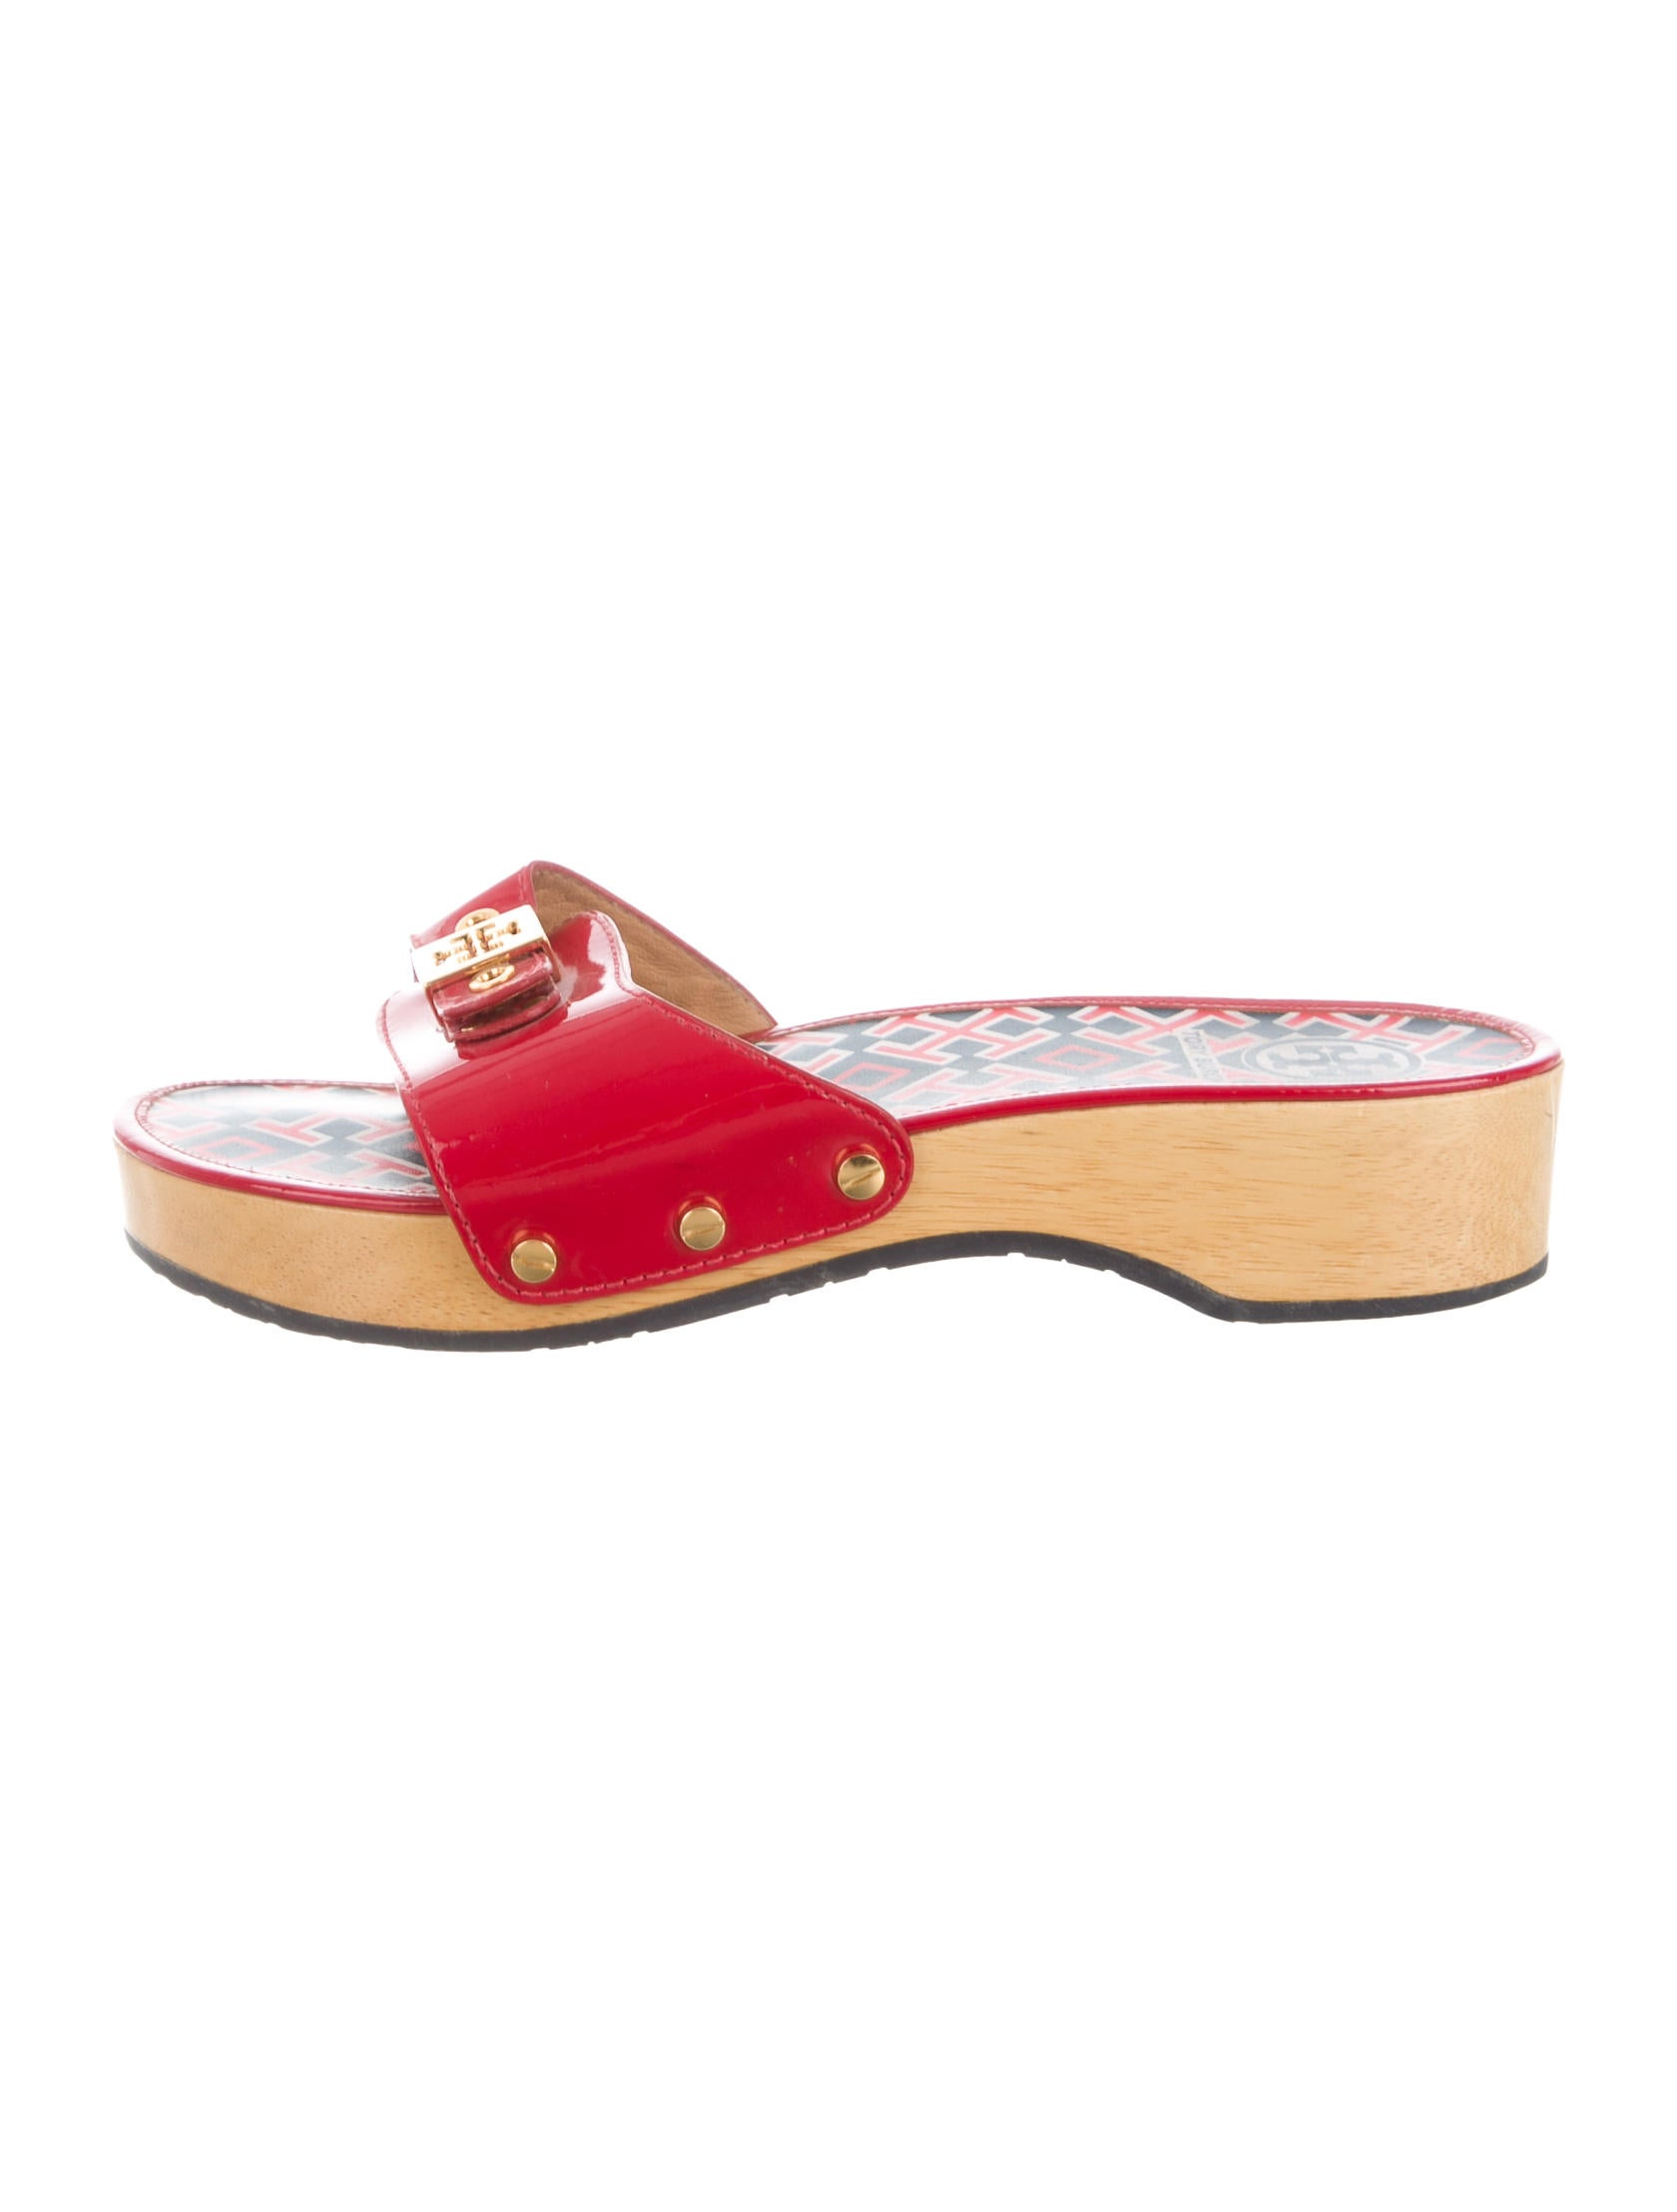 Dixon Slide Clogs